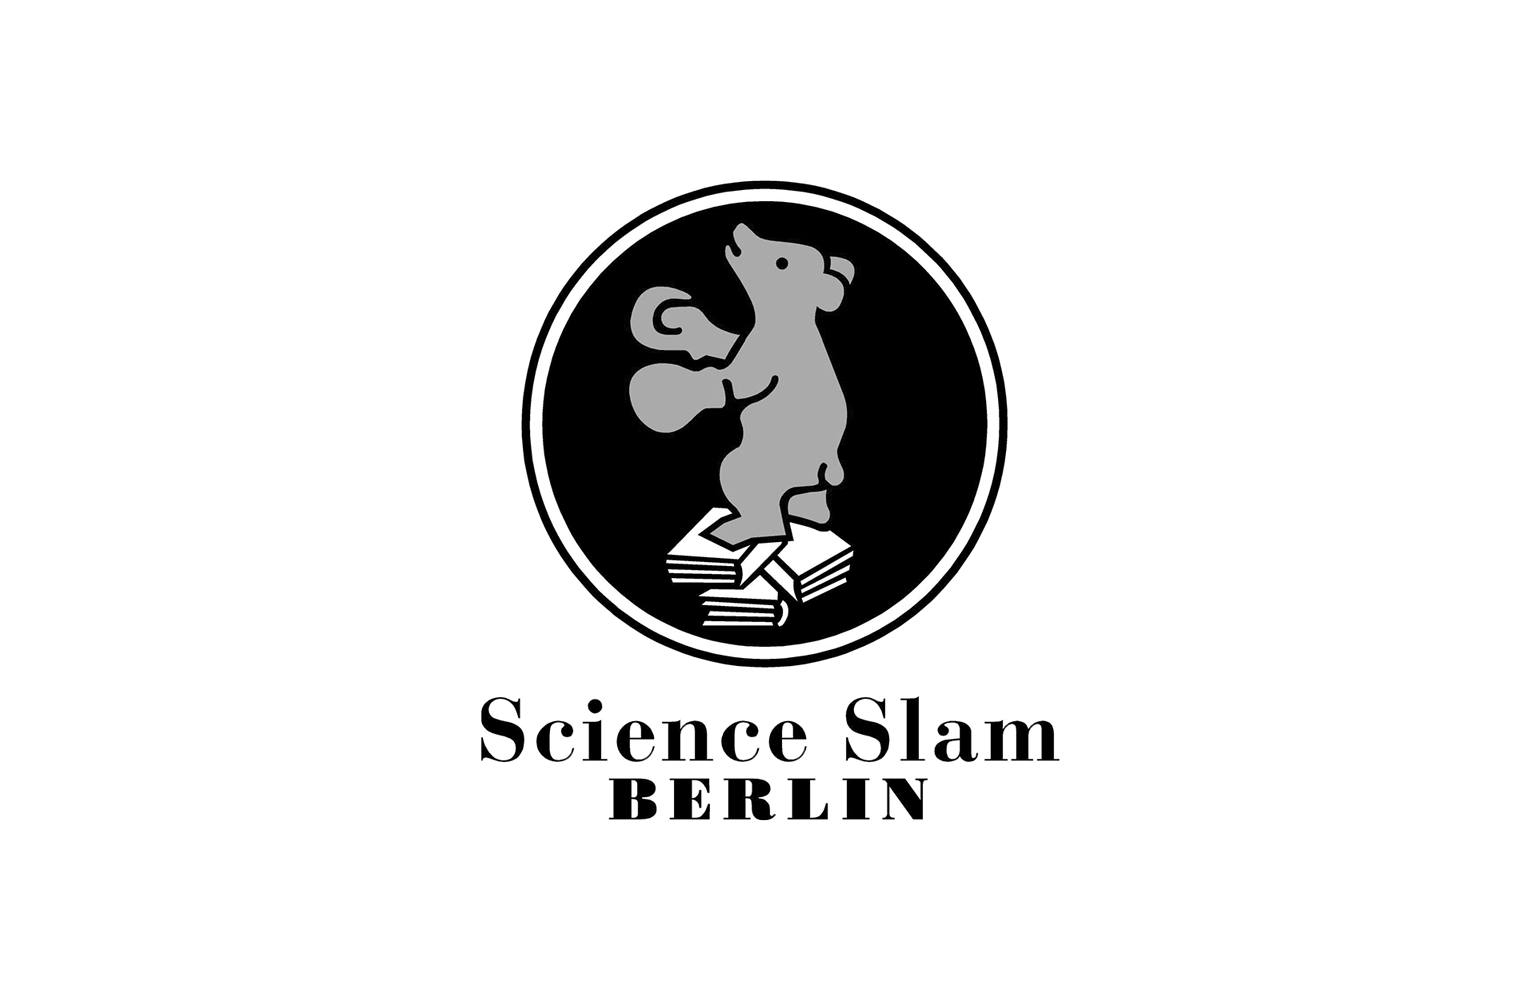 Science Slam Berlin